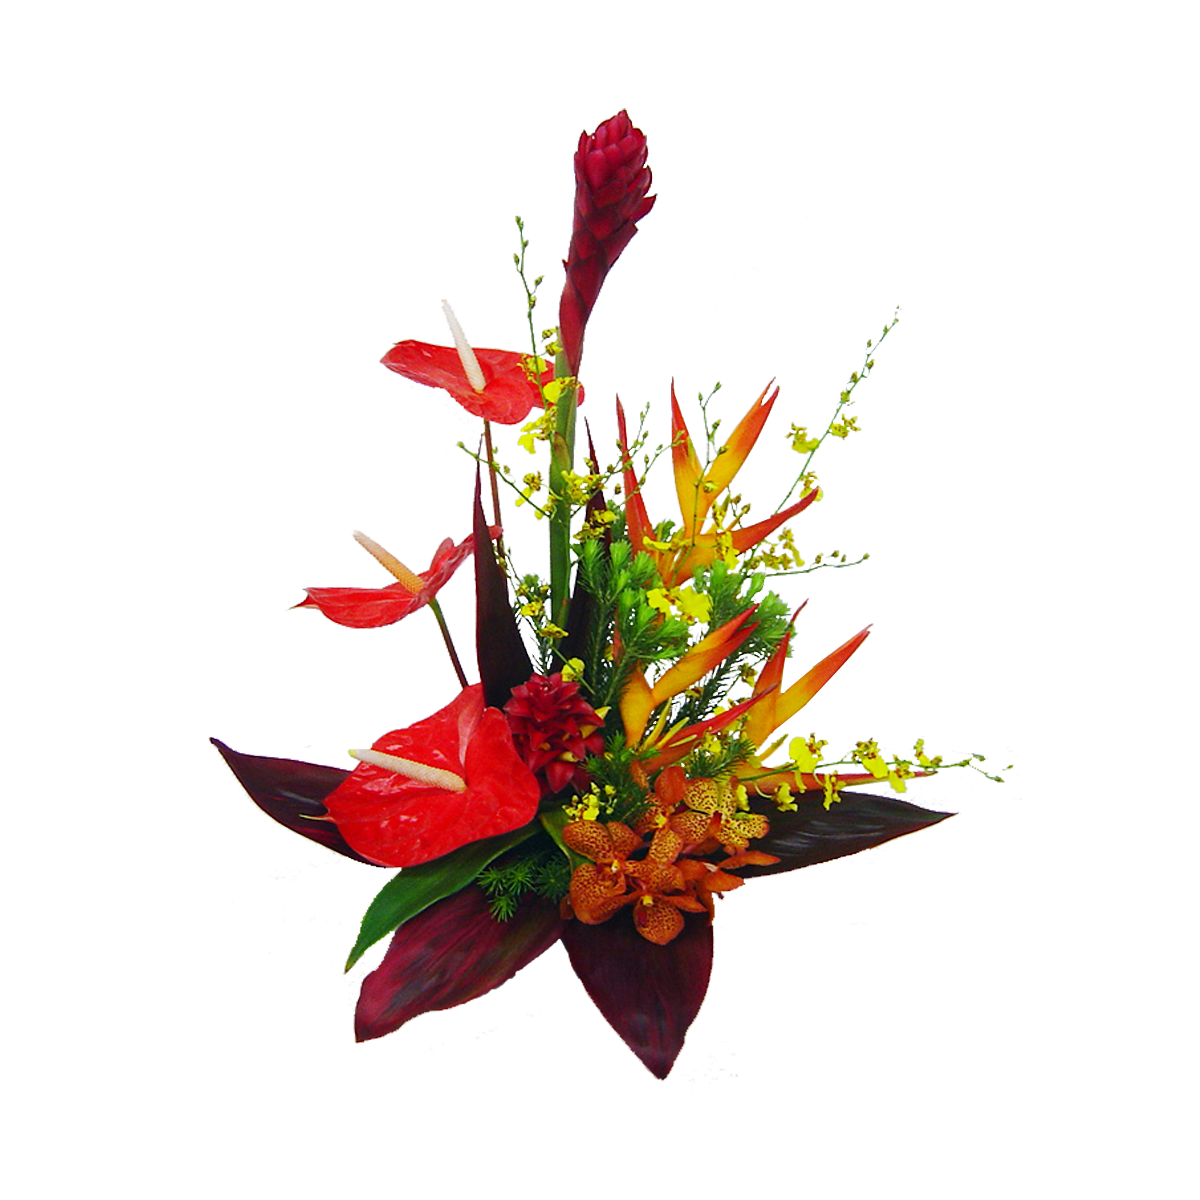 Tropical island flowers png. Bright red hawaiian bouquet